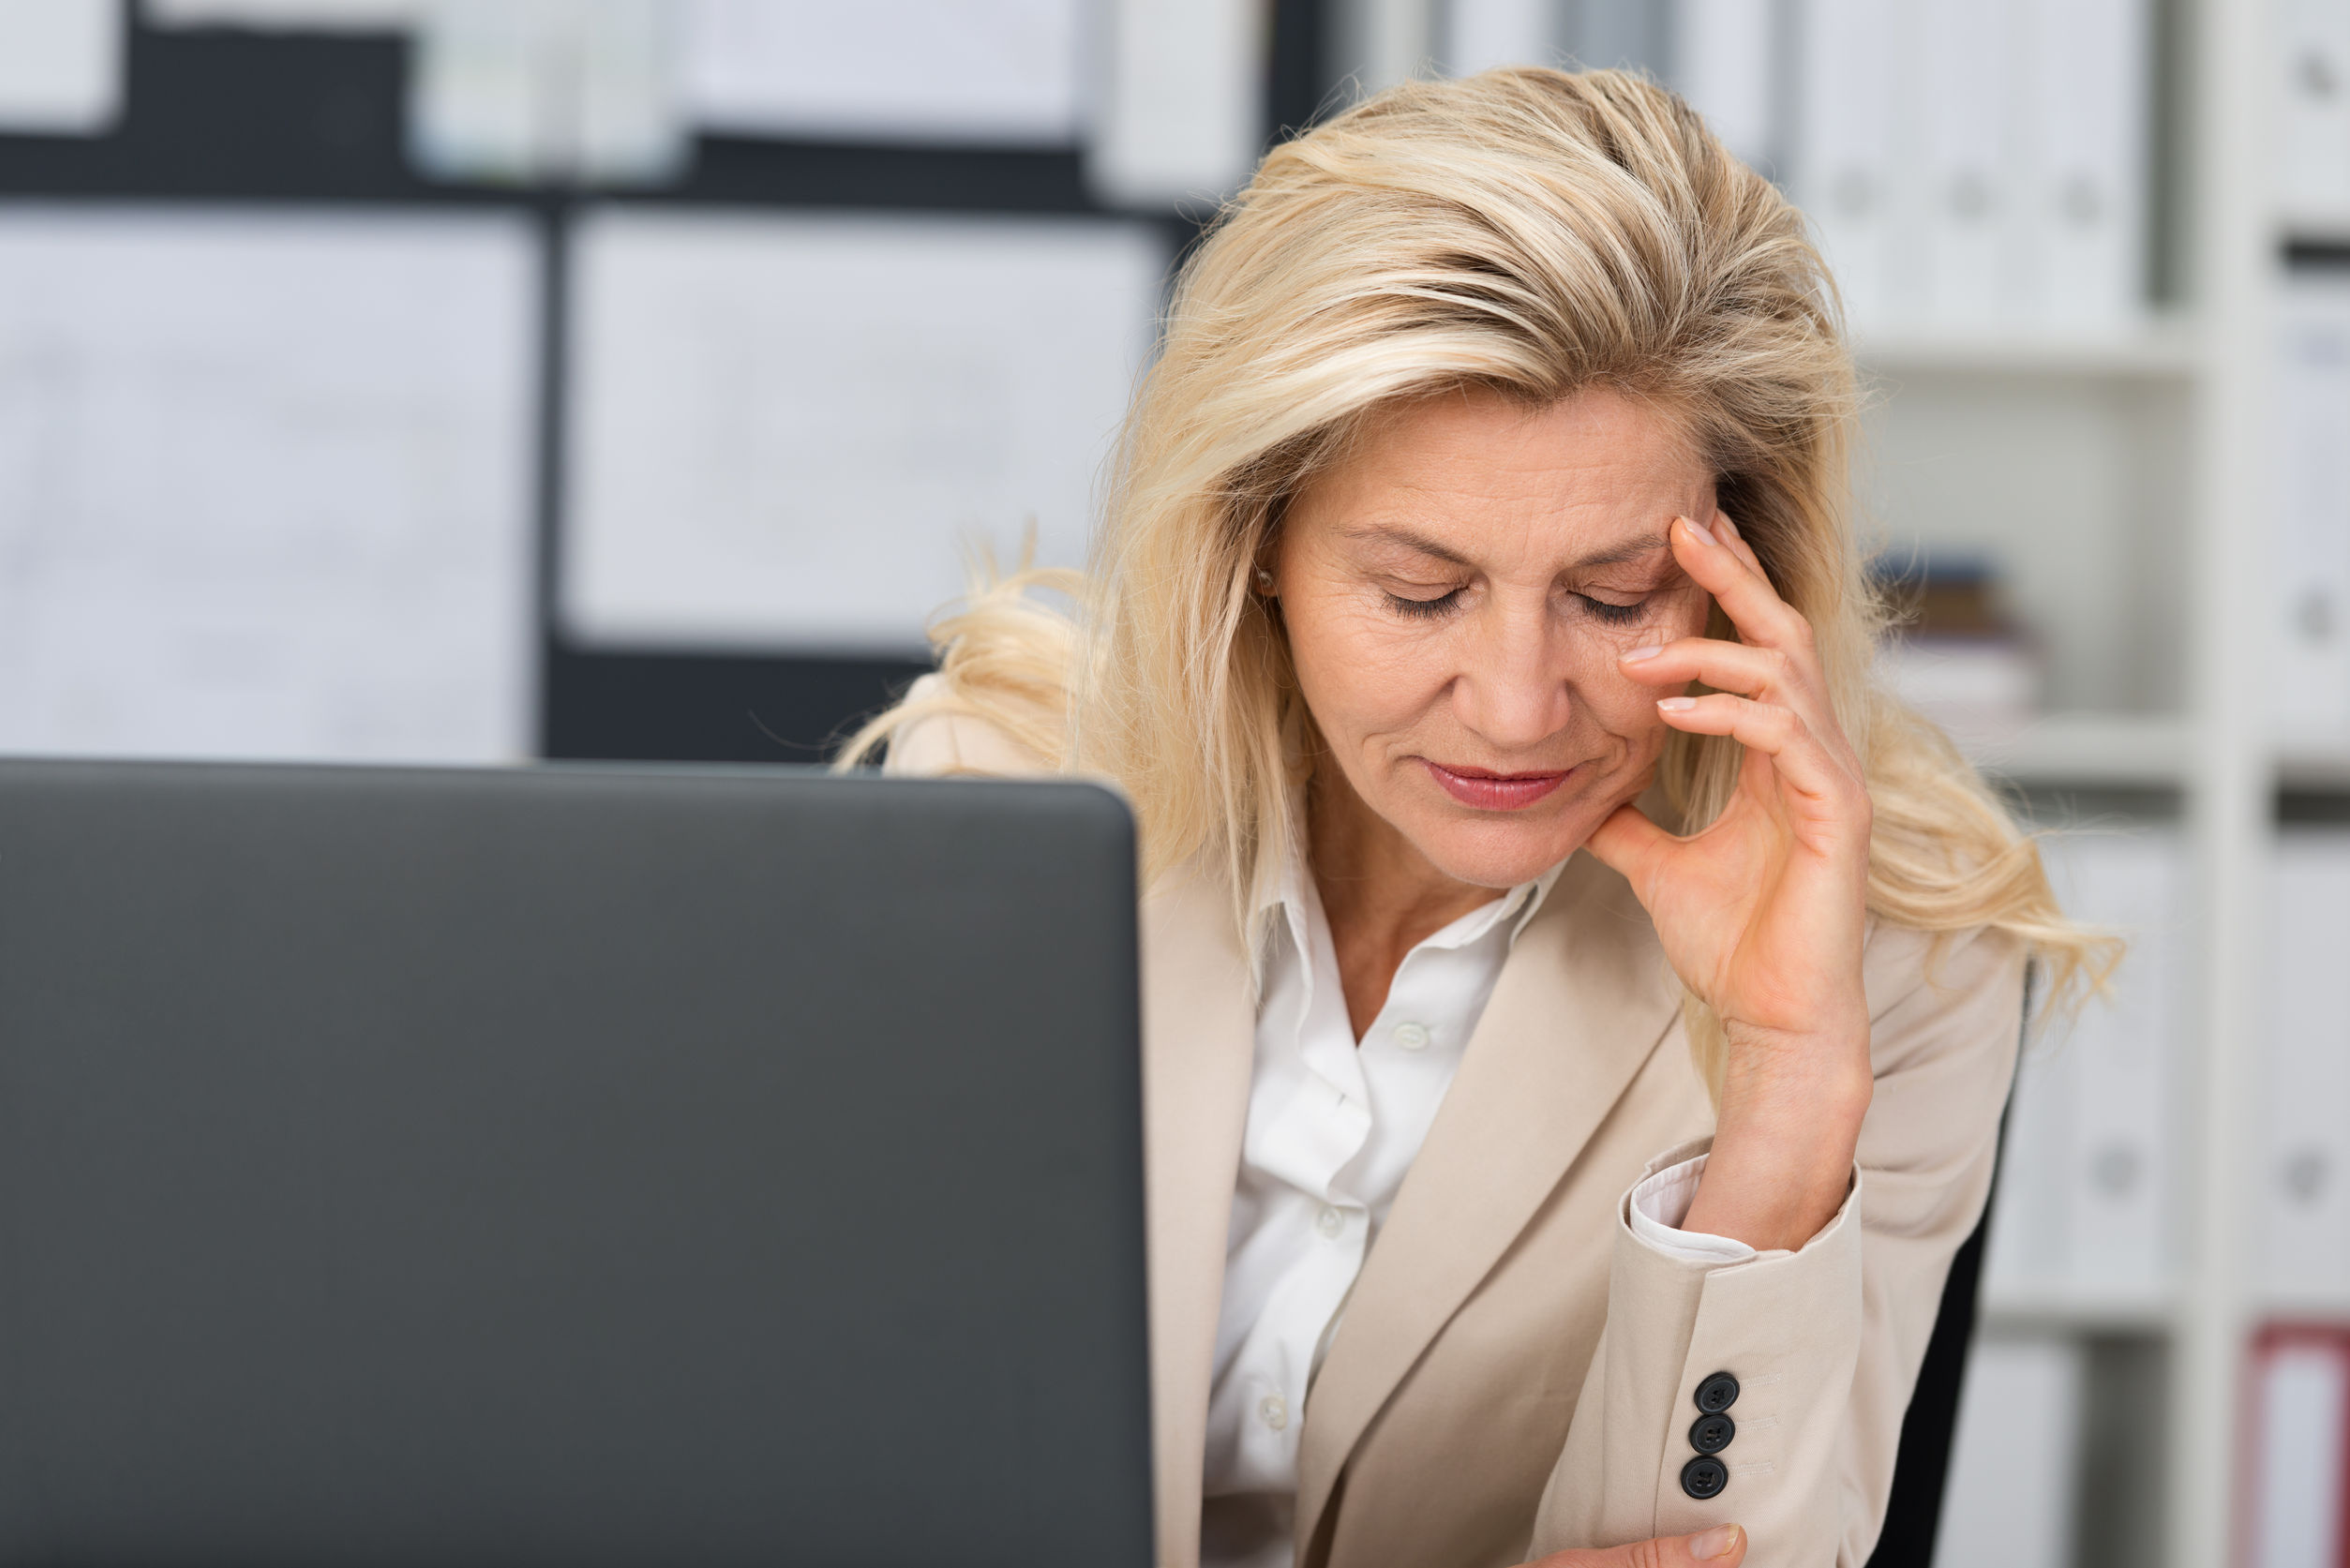 middle-aged businesswoman suffering a stress headache sitting at her desk